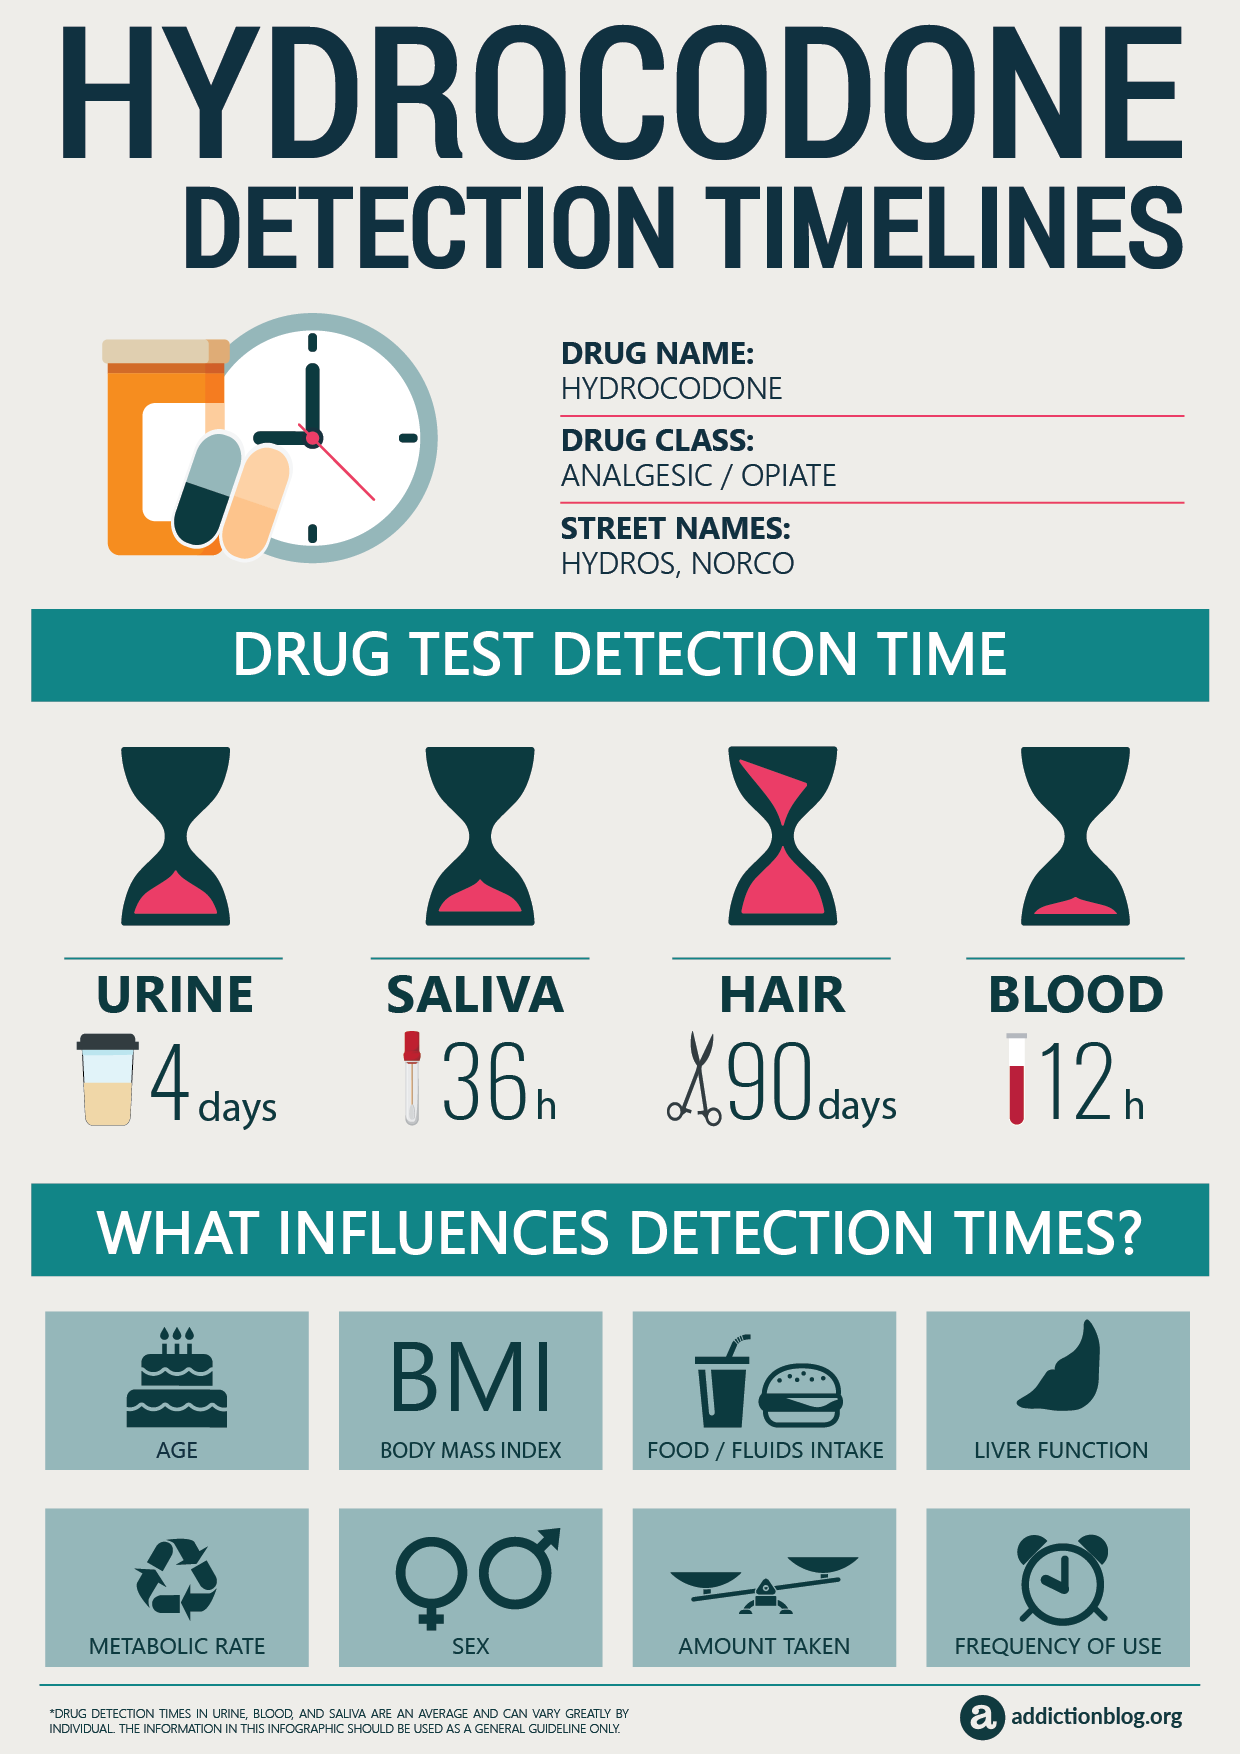 Hydrocodone Detection Timeline [INFOGRAPHIC]